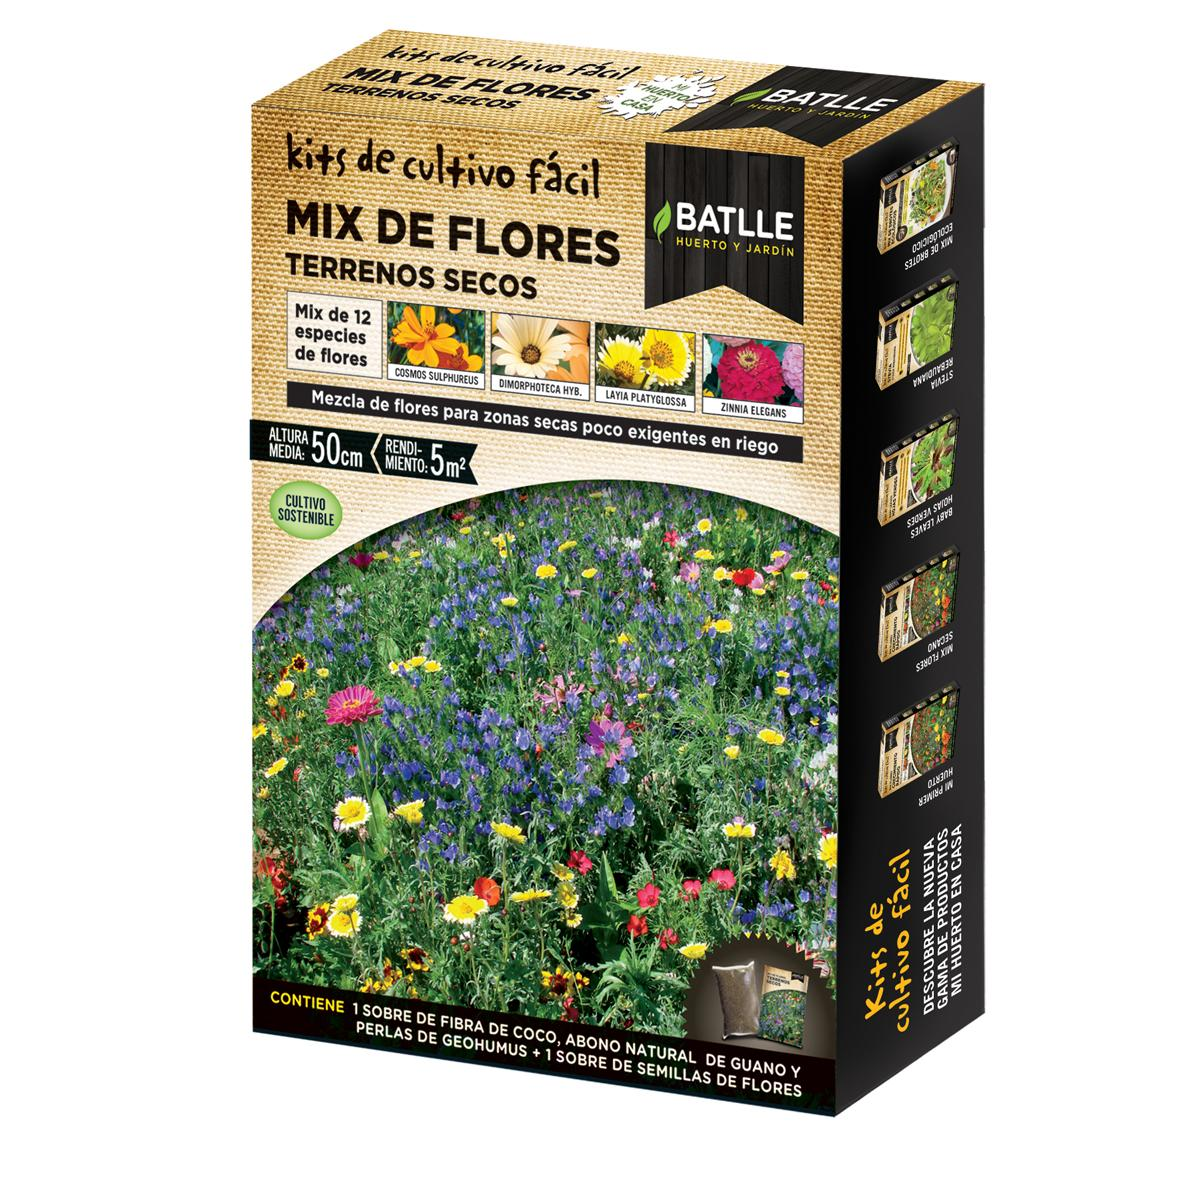 Kit de cultivo mix flores de terrenos secos por 5 36 em for Kit de cultivo de interior